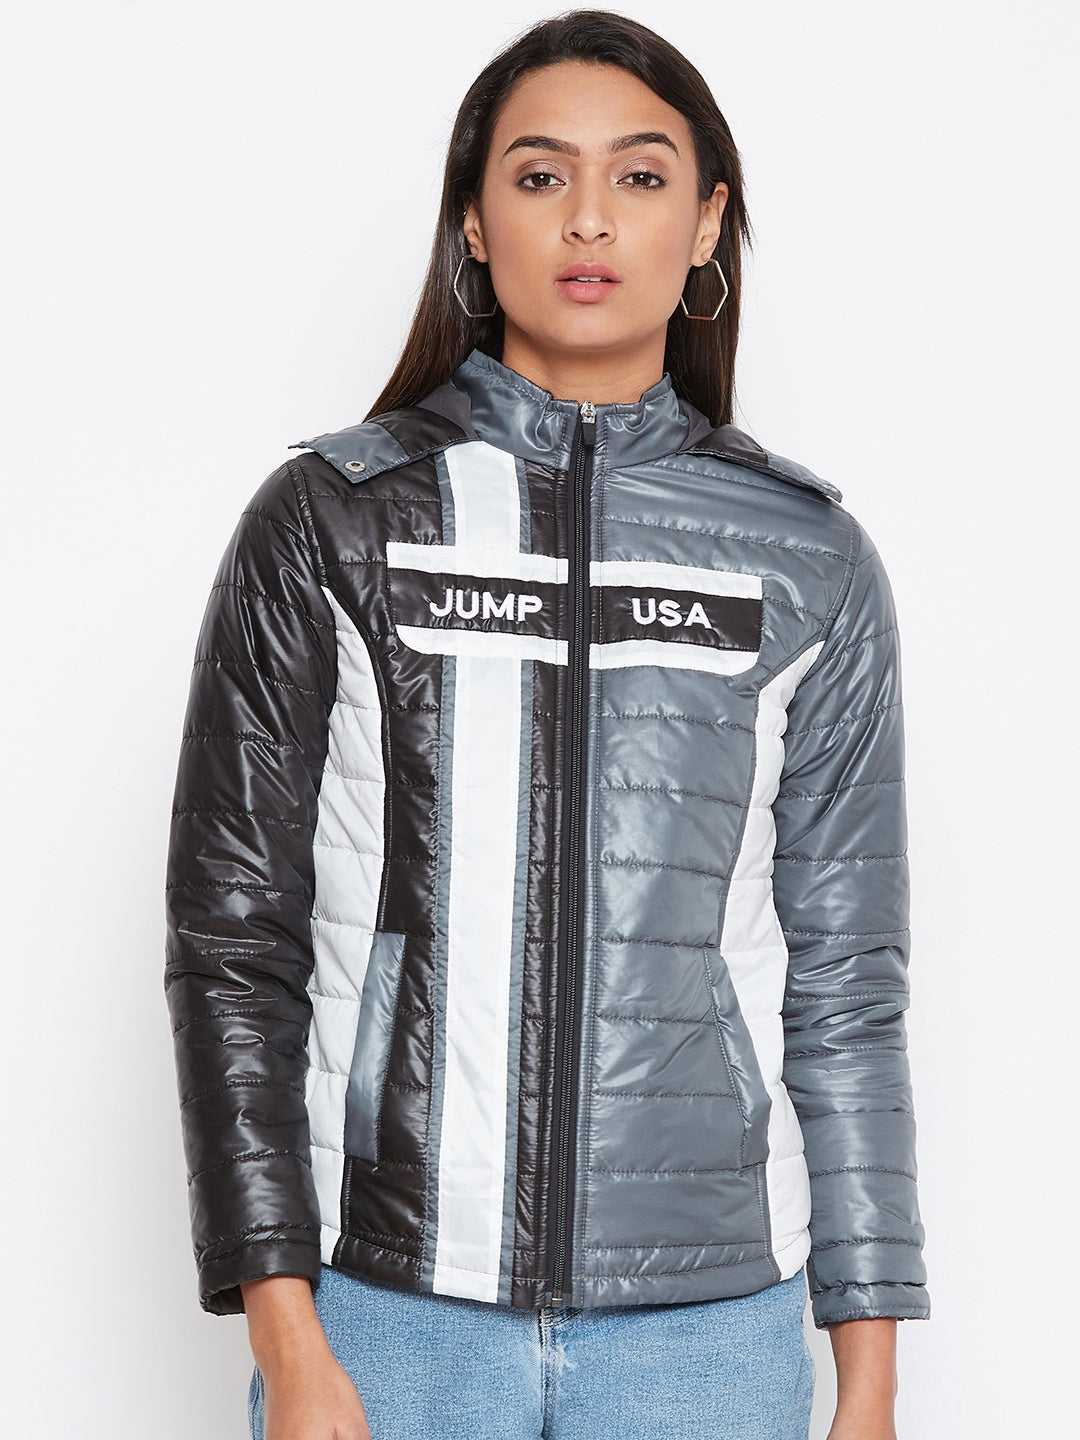 JUMP USA Women Grey Colourblocked Bomber Jacket